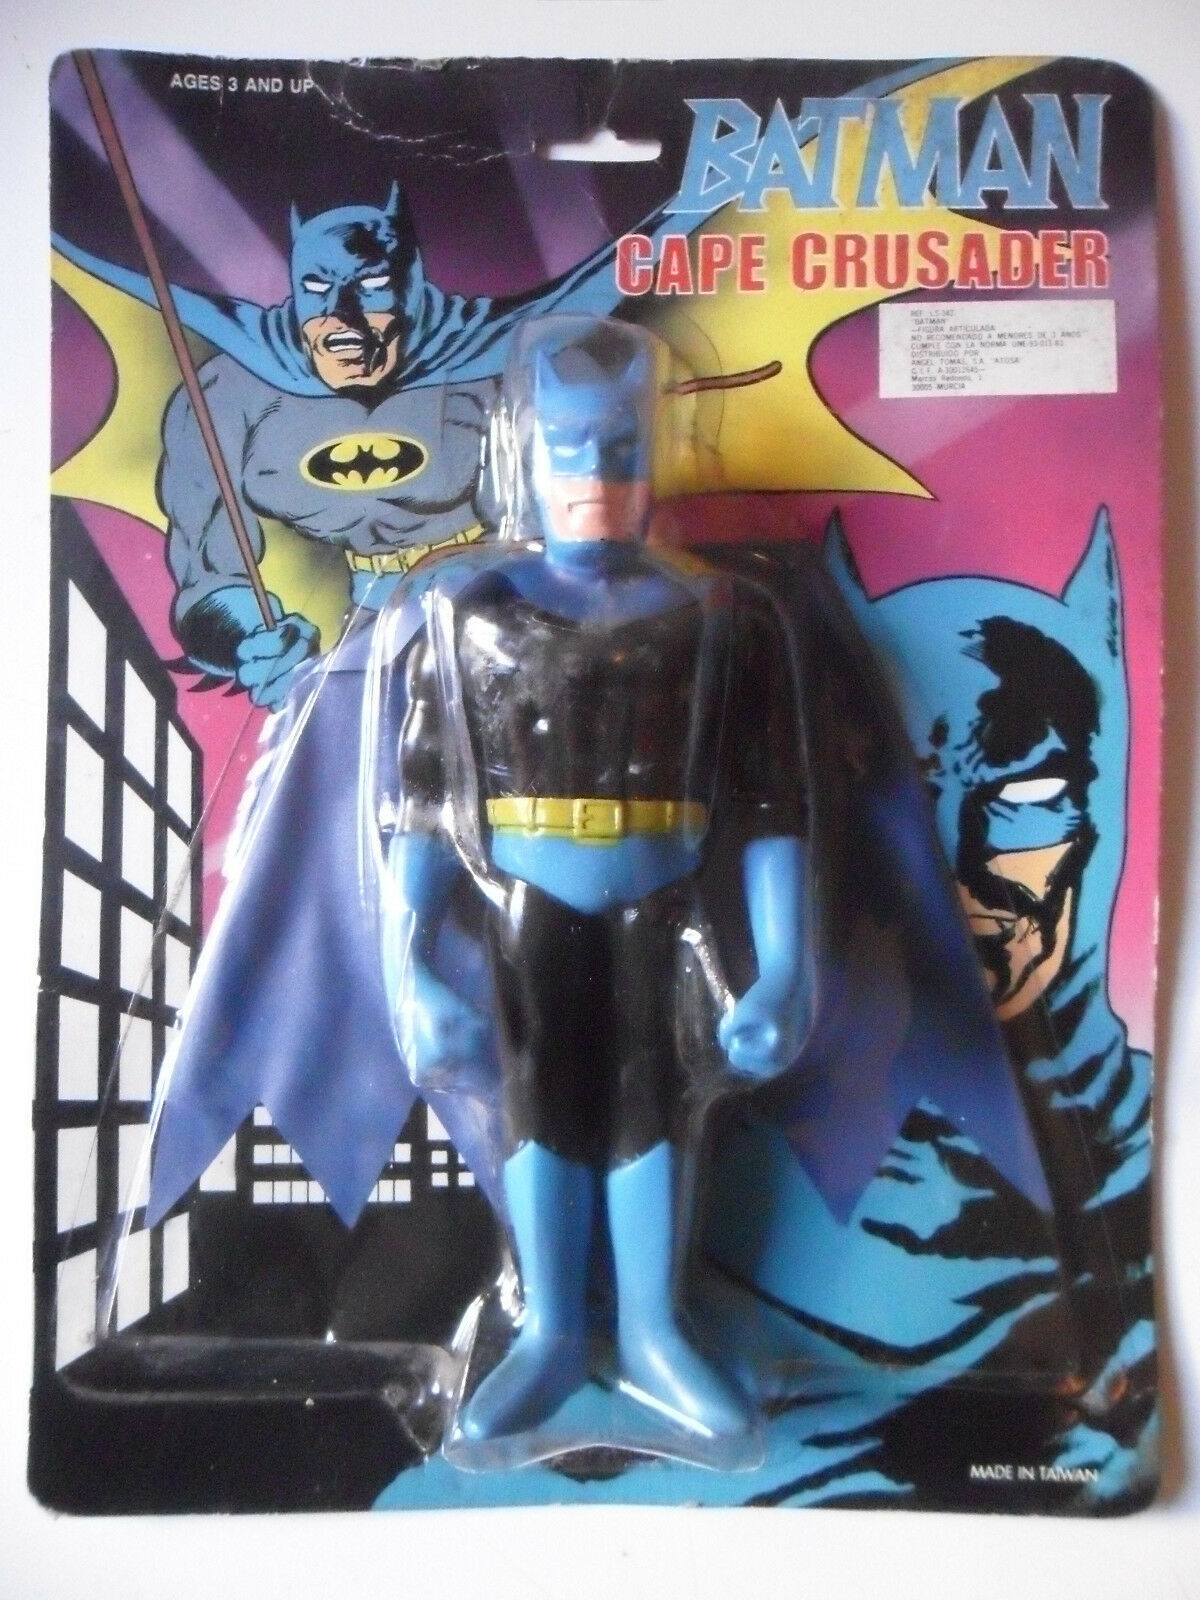 RARE VINTAGE BATMAN CAPE CRUSADER StiefelLEG FIGURE SEALED ON CARD